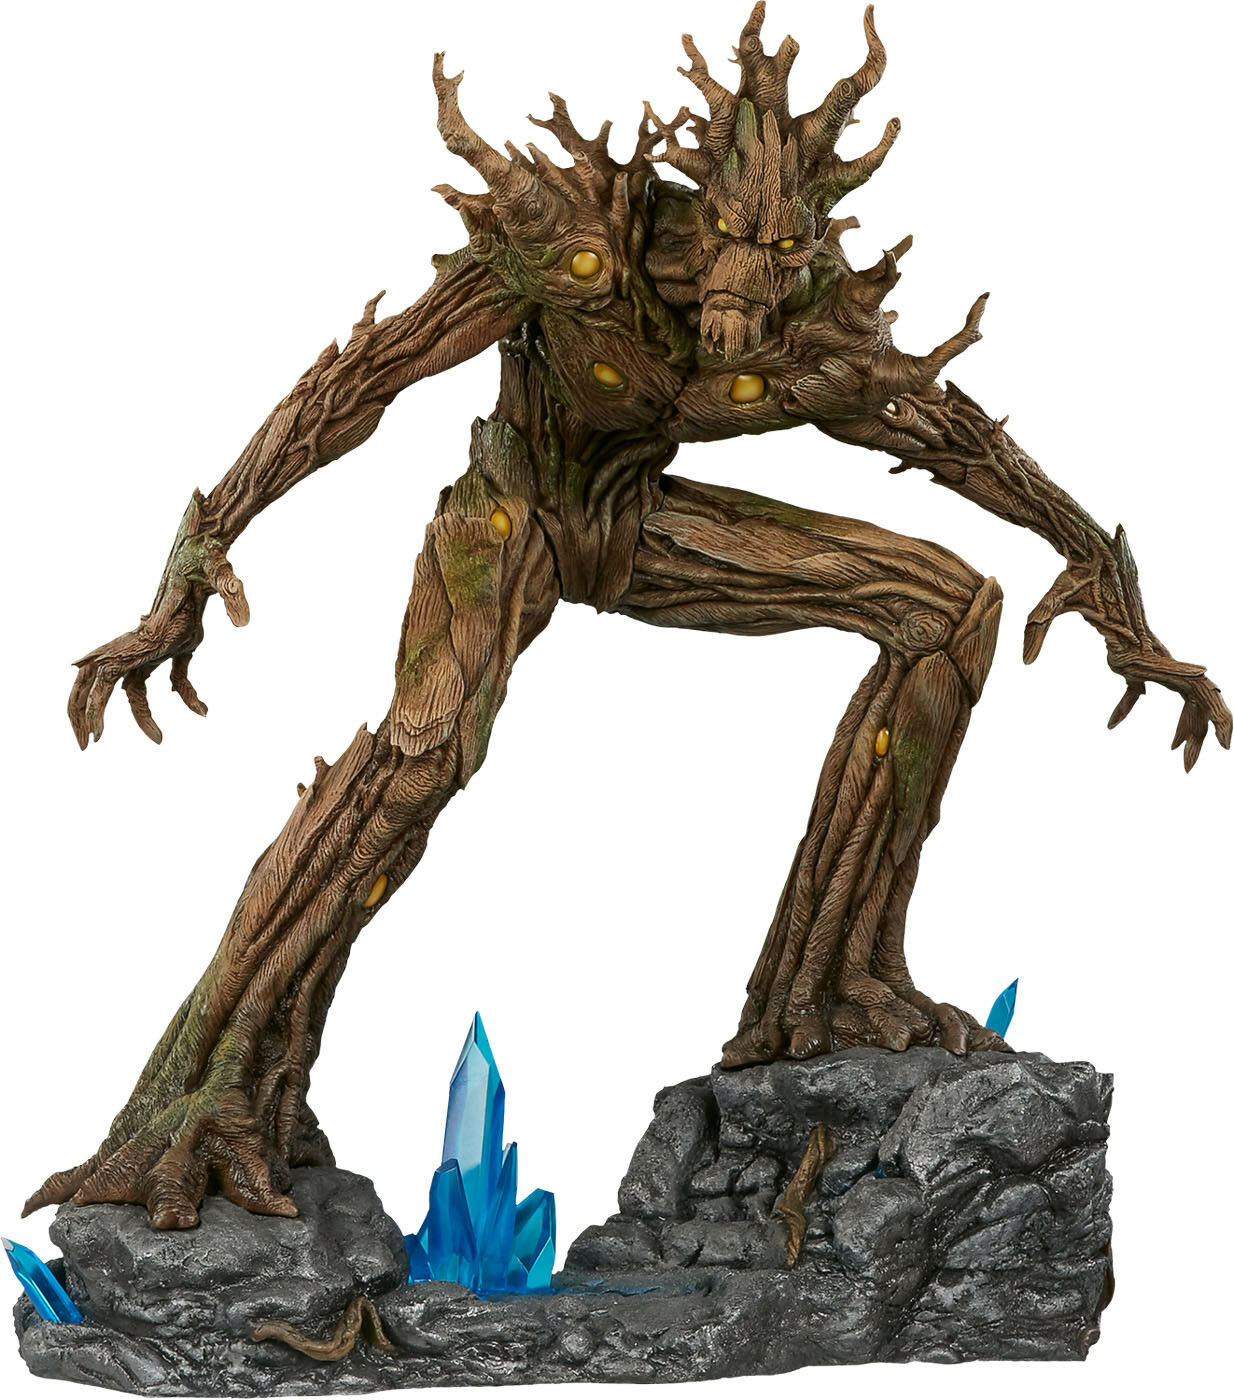 GUARDIANS OF THE GALAXY - Groot 22.5  Premium Format Statue (Sideshow)